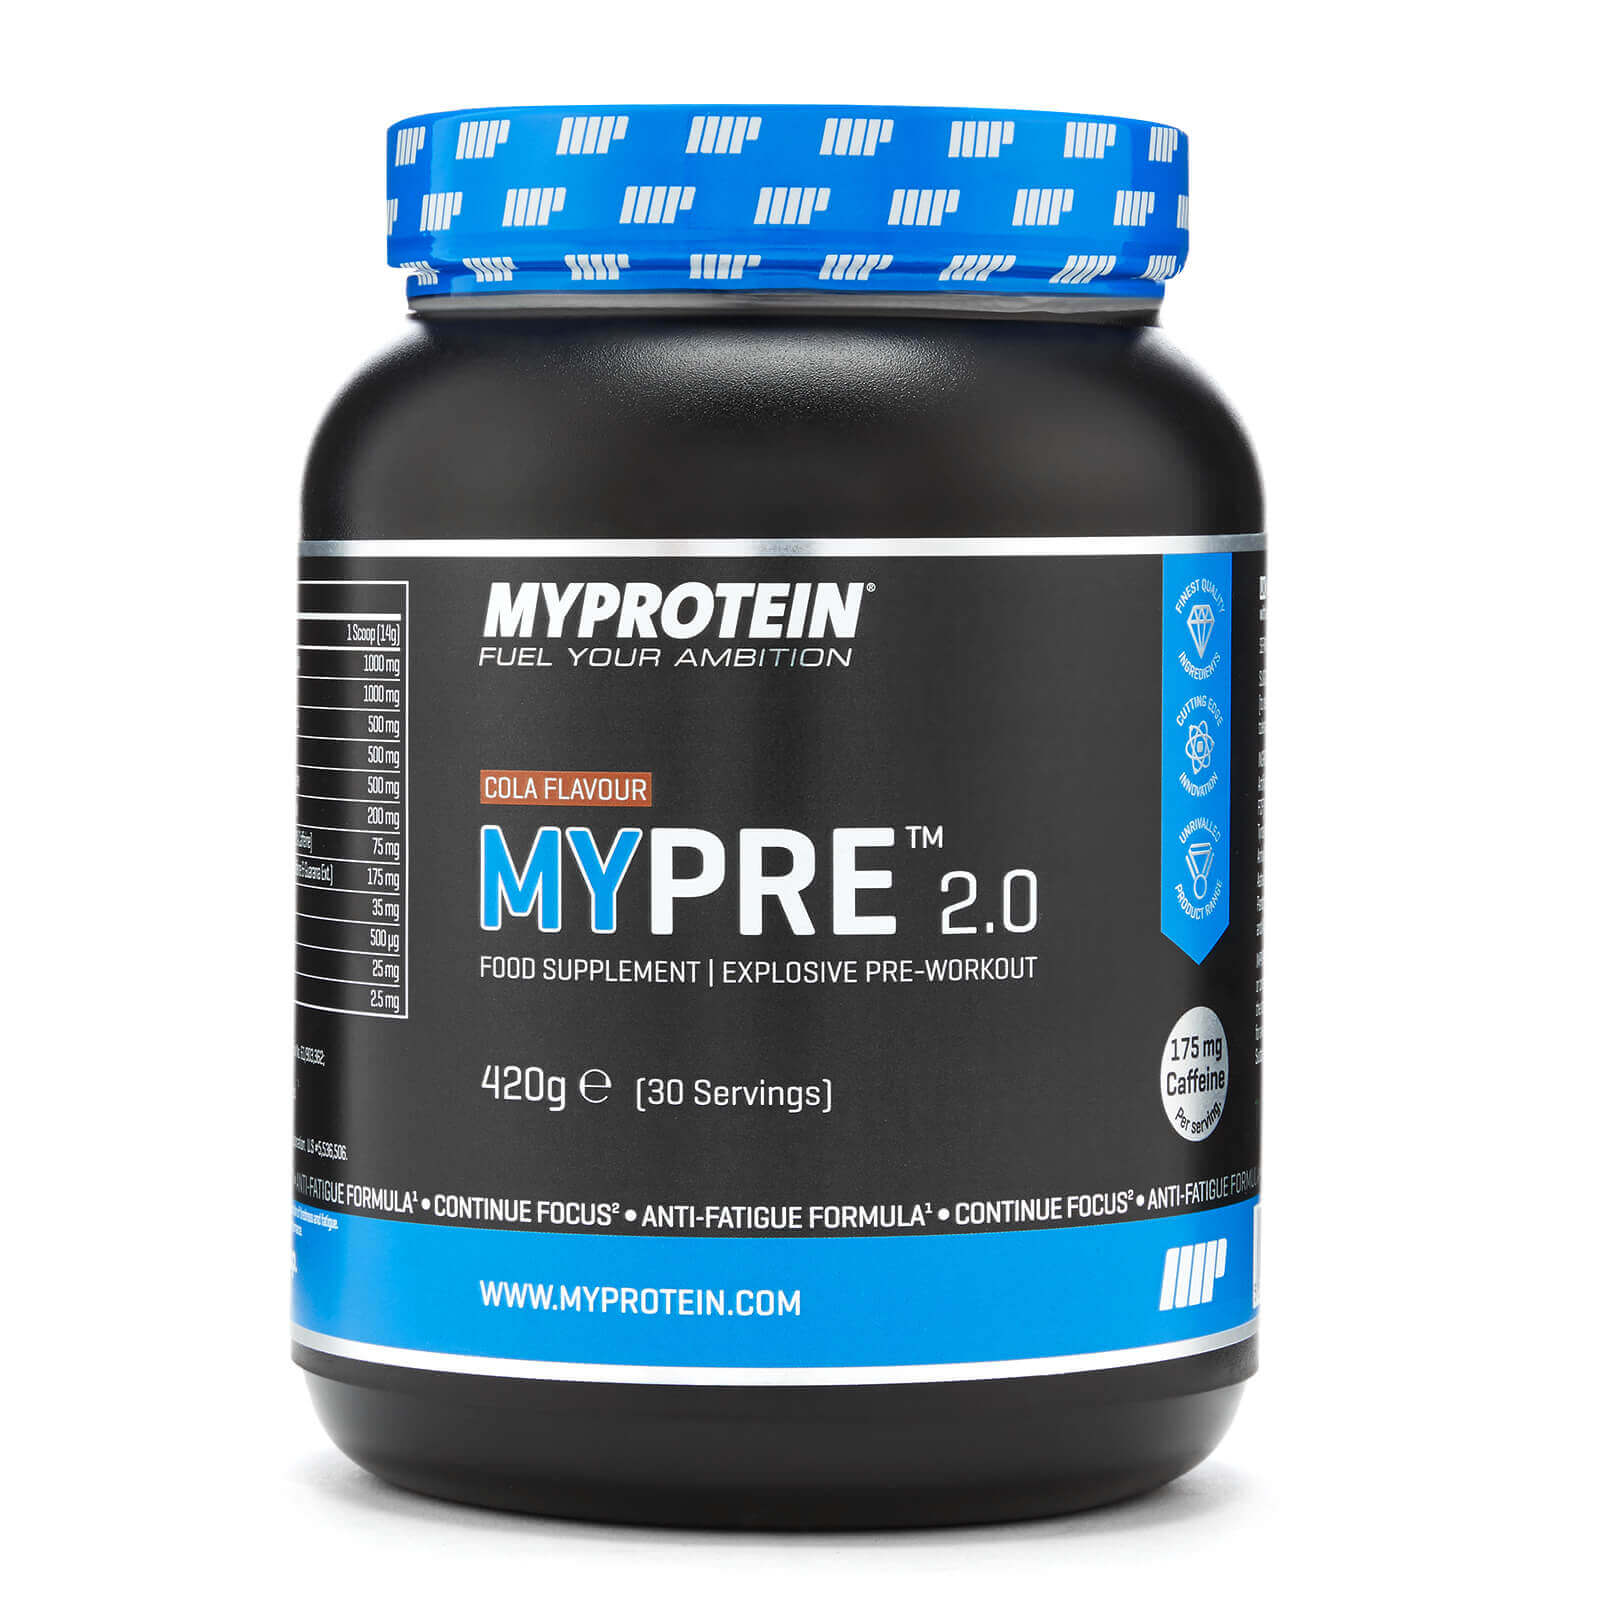 MYPRE V2, Cola, 30 Servings